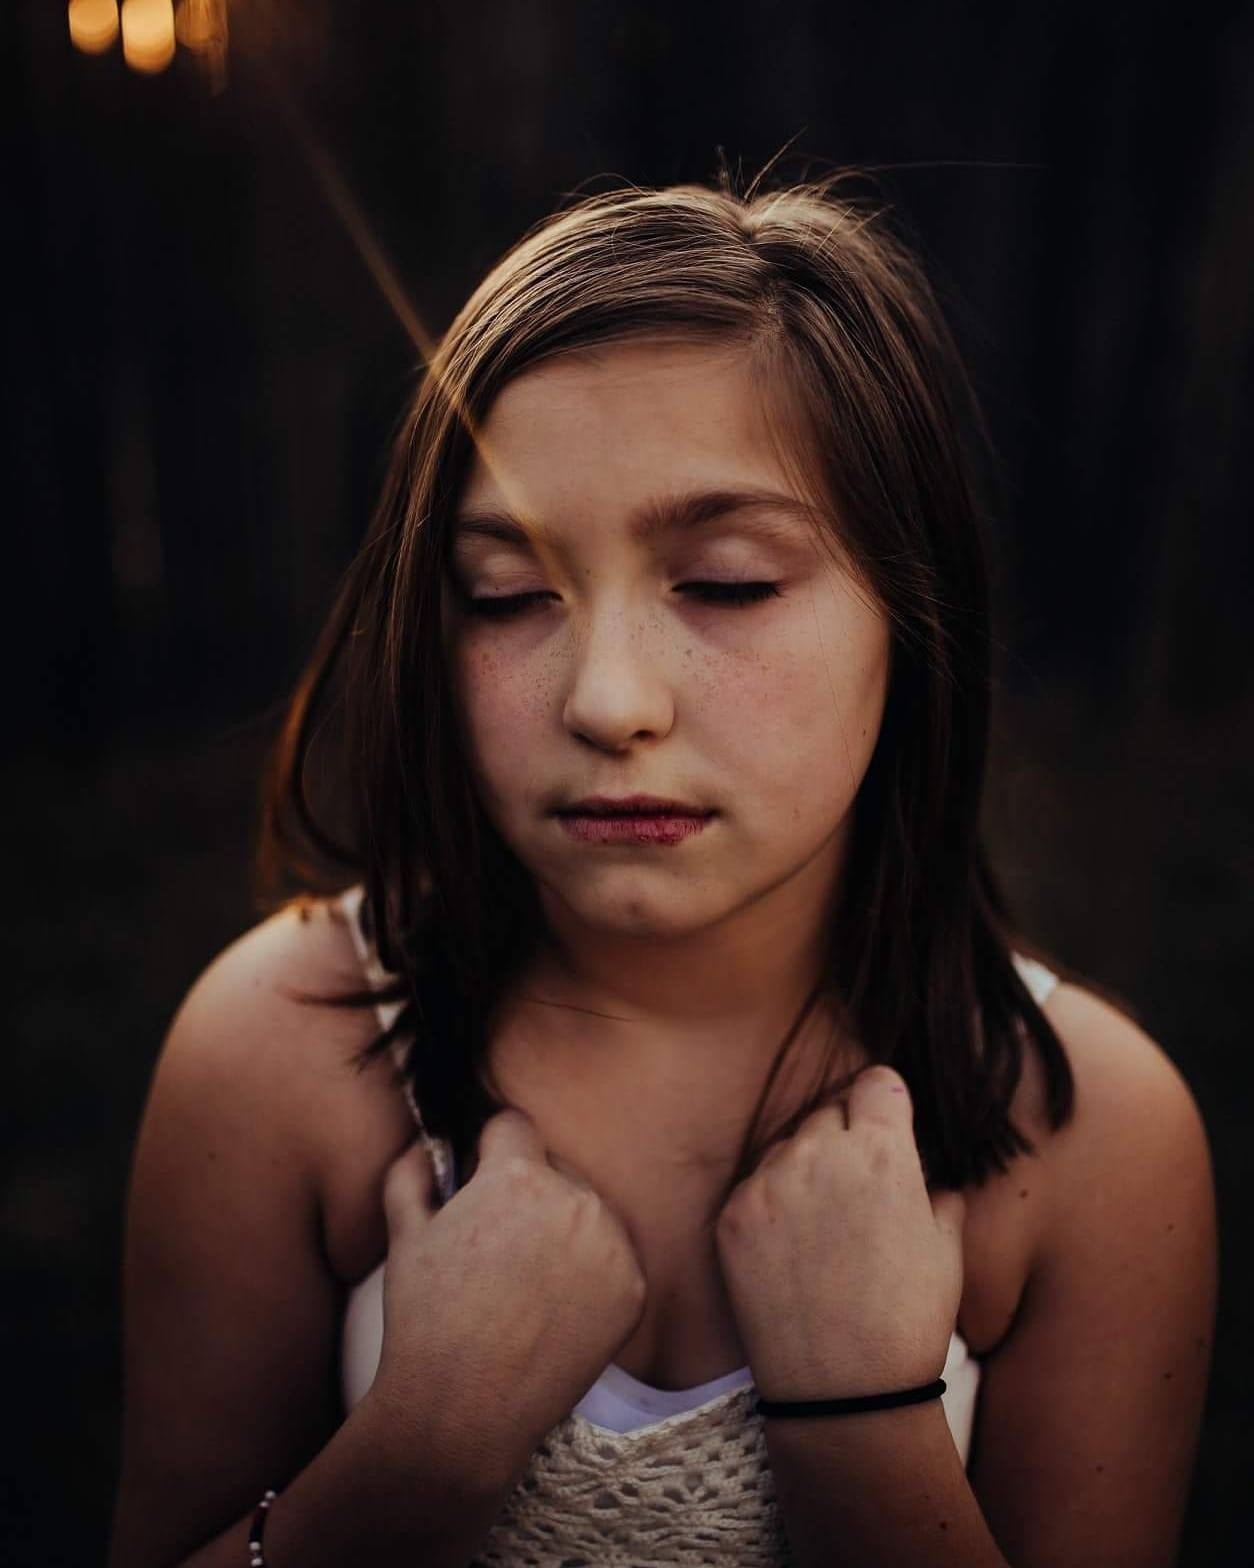 Portrait of girl lost in thought, Sarah Maverick Photography Daily Fan Favorite